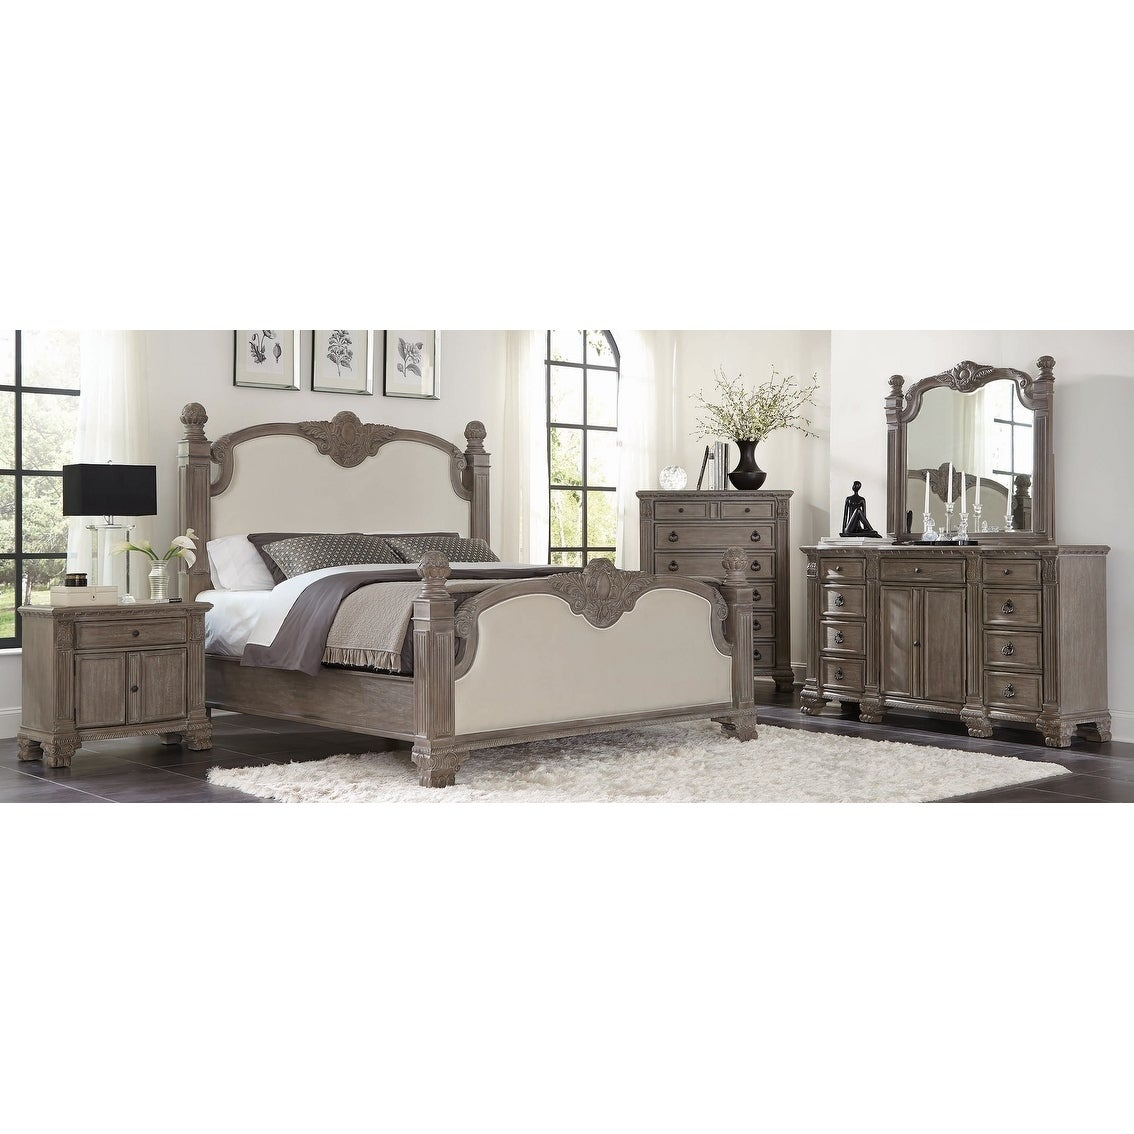 Colby Ivory and Vintage Grey 3-piece Panel Bedroom Set with Chest